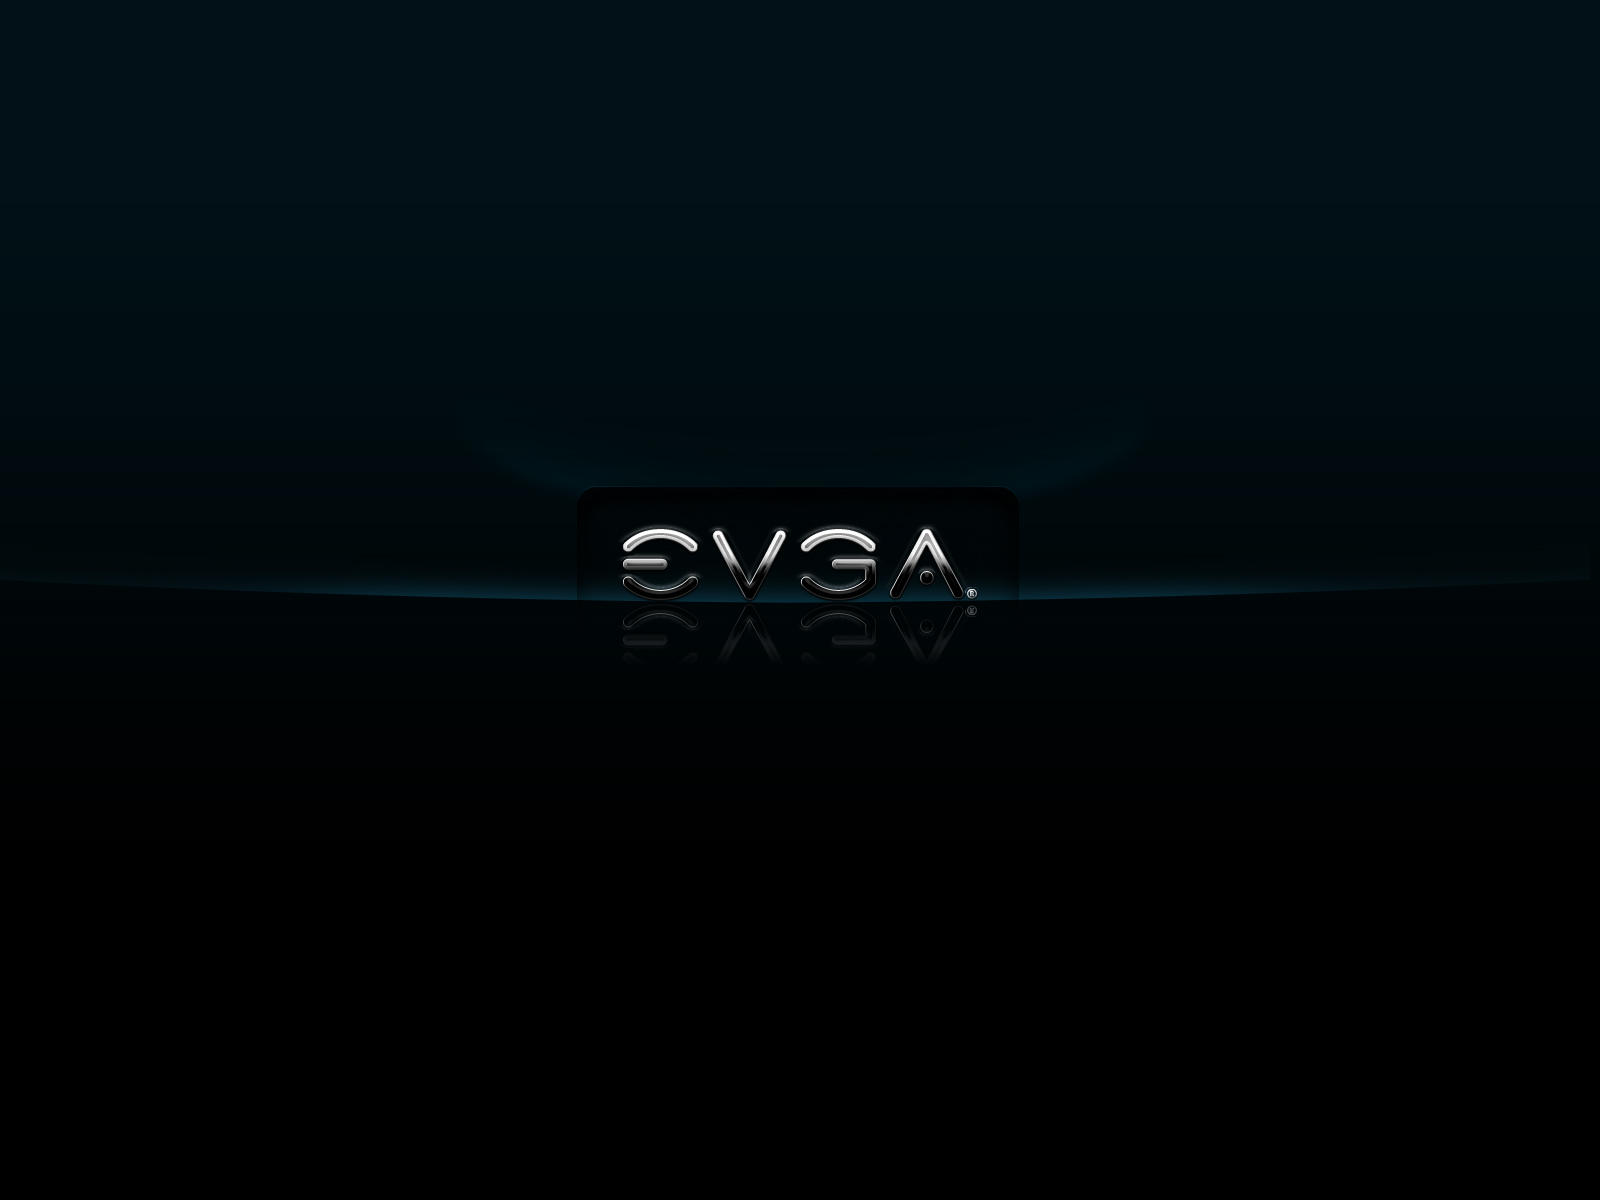 evga wallpaper by xdreamerEvga Wallpaper 1080p